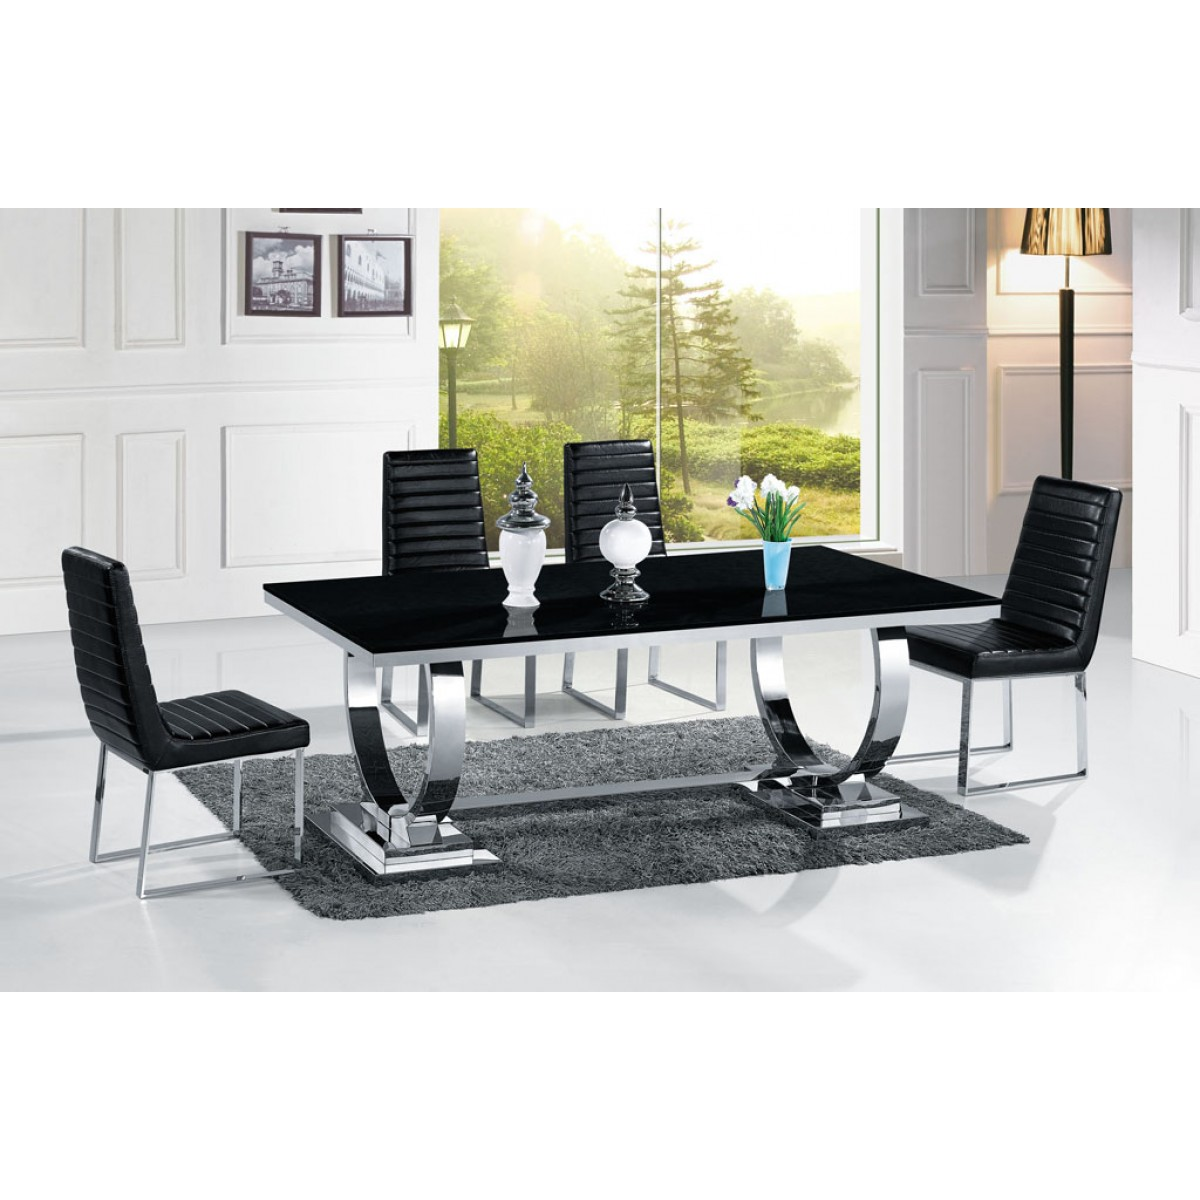 Table de salle manger en inox venezia mabre ou verre for Table de salle a manger blanc design